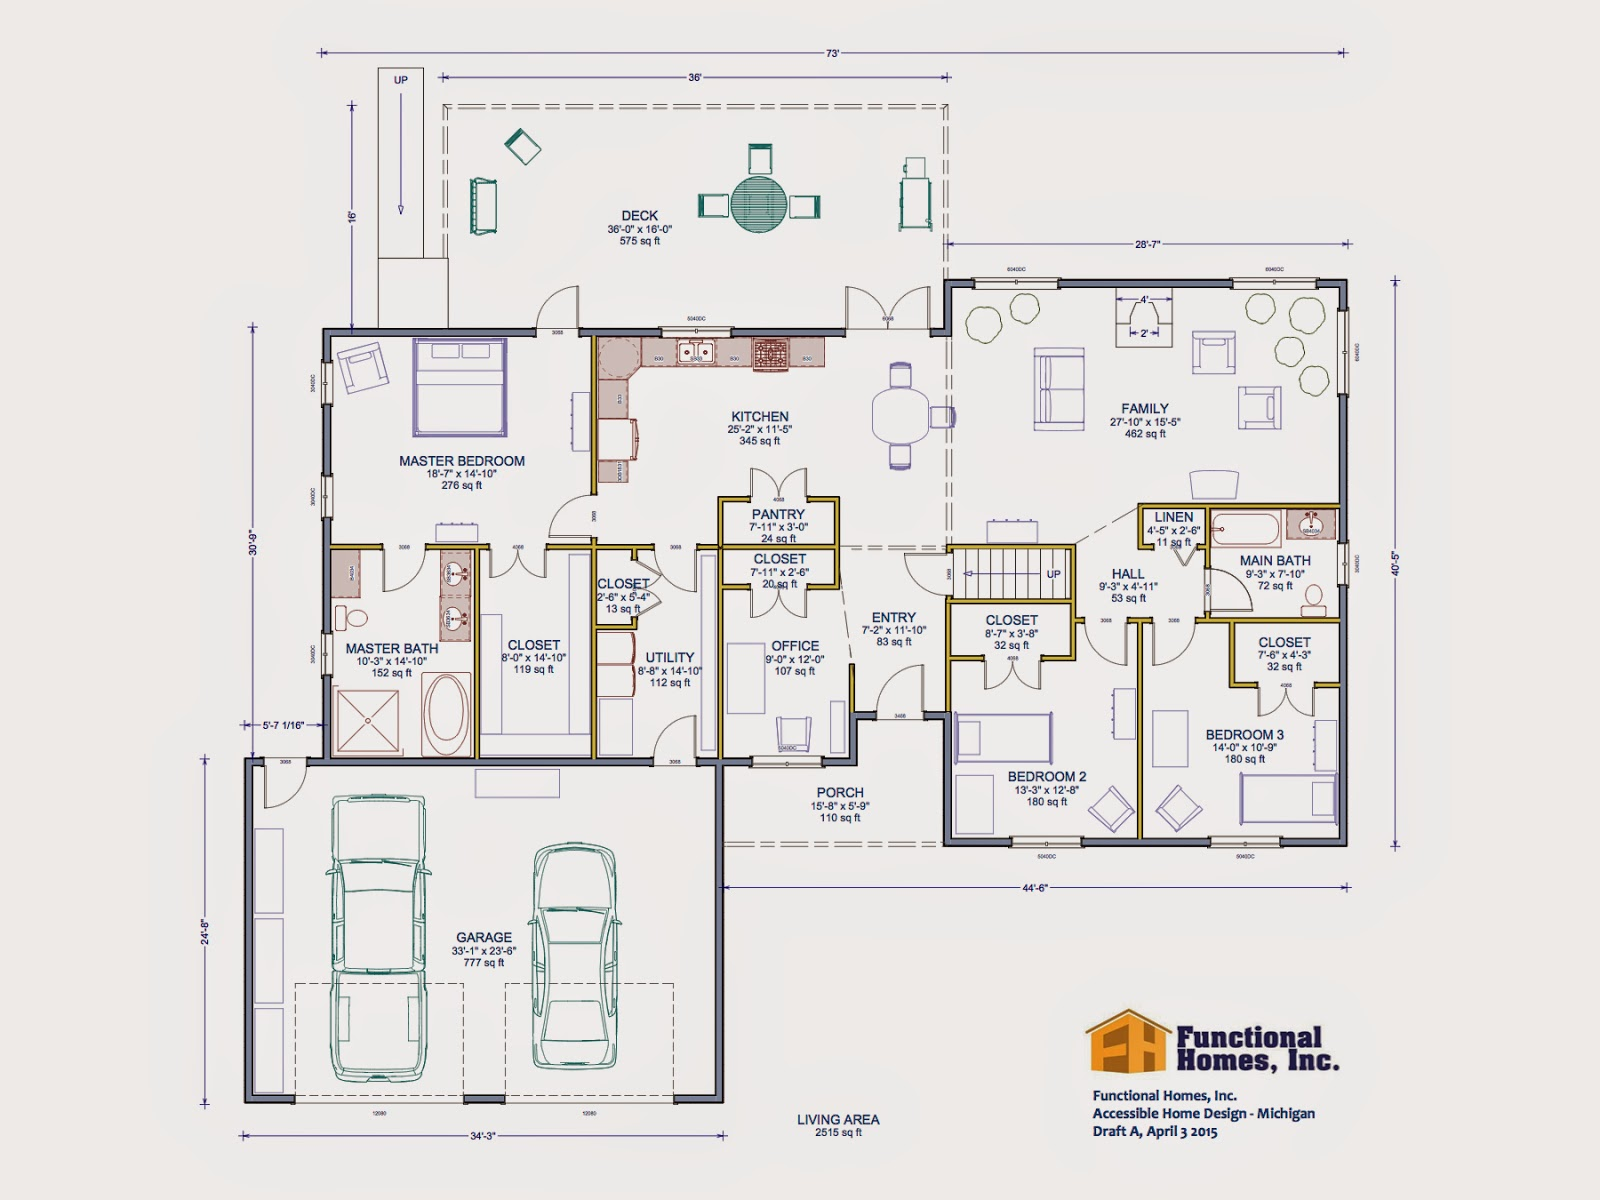 3 Bedroom Wheelchair Accessible House Plan Work In Progress Take A Look Universal Design For: small bathroom floor plans australia